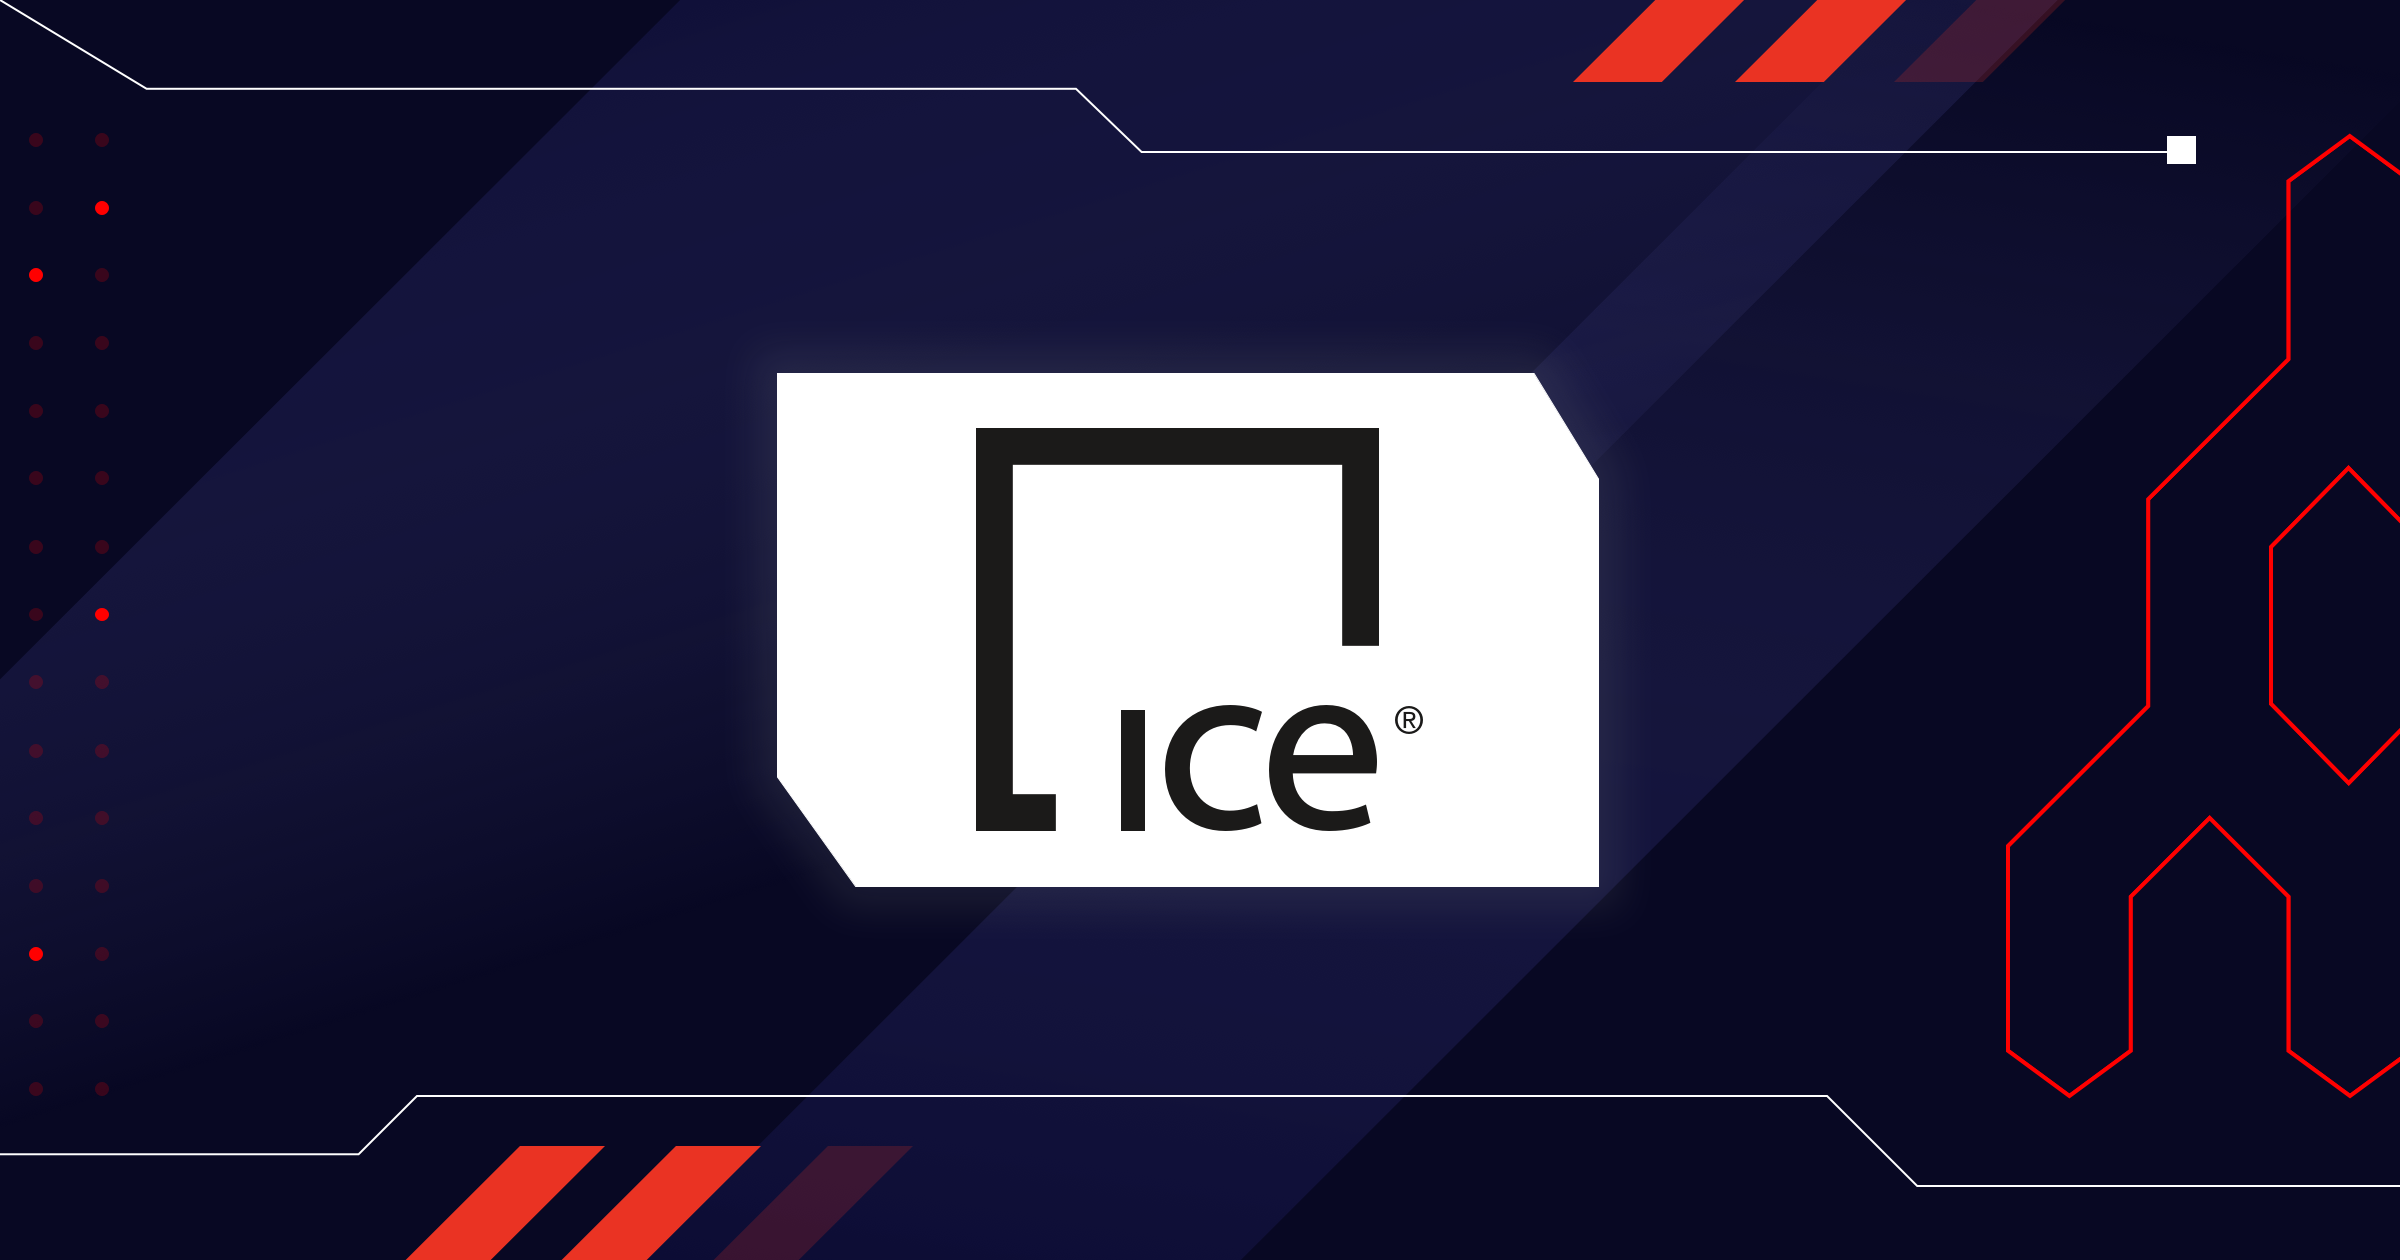 ICE launches IGN Cloud Connect